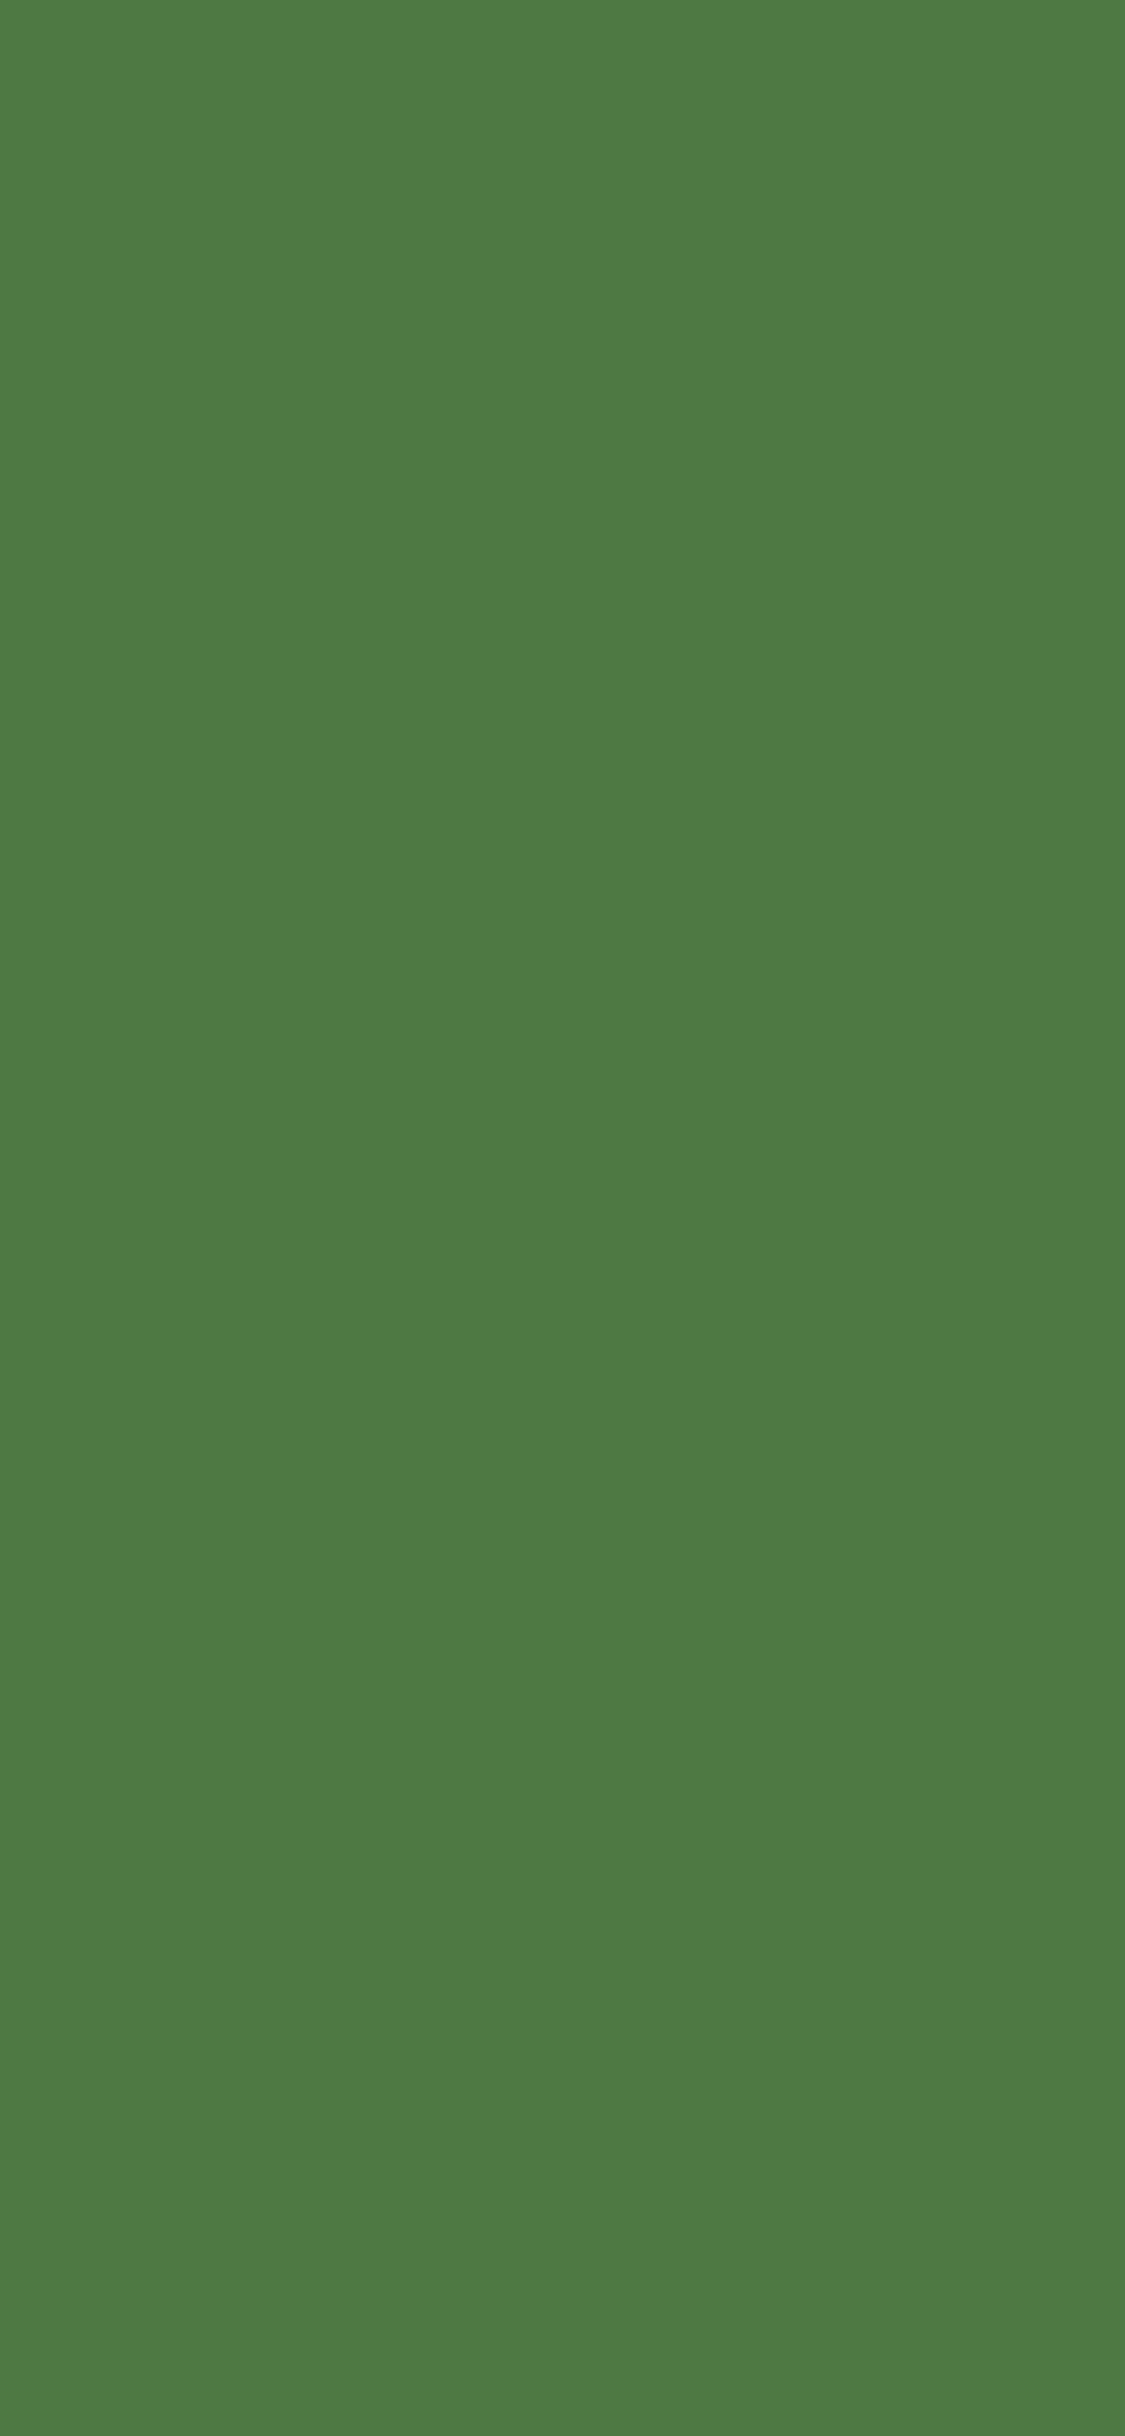 1125x2436 Fern Green Solid Color Background